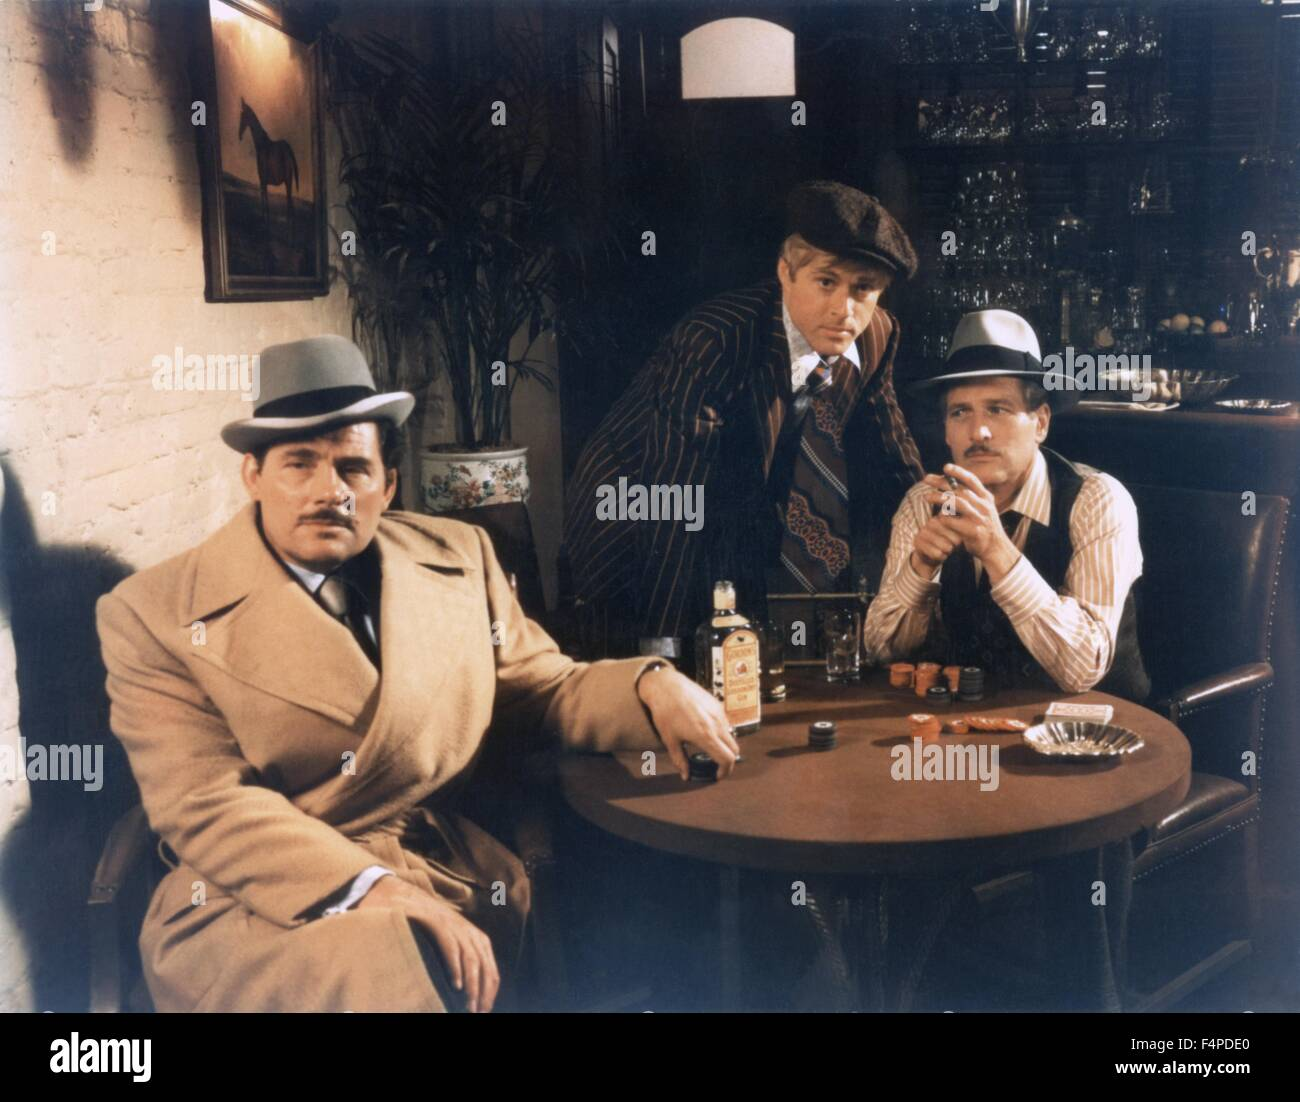 Robert Shaw, Robert Redford, Paul Newman / The Sting 1973 directed by George Roy Hill - Stock Image